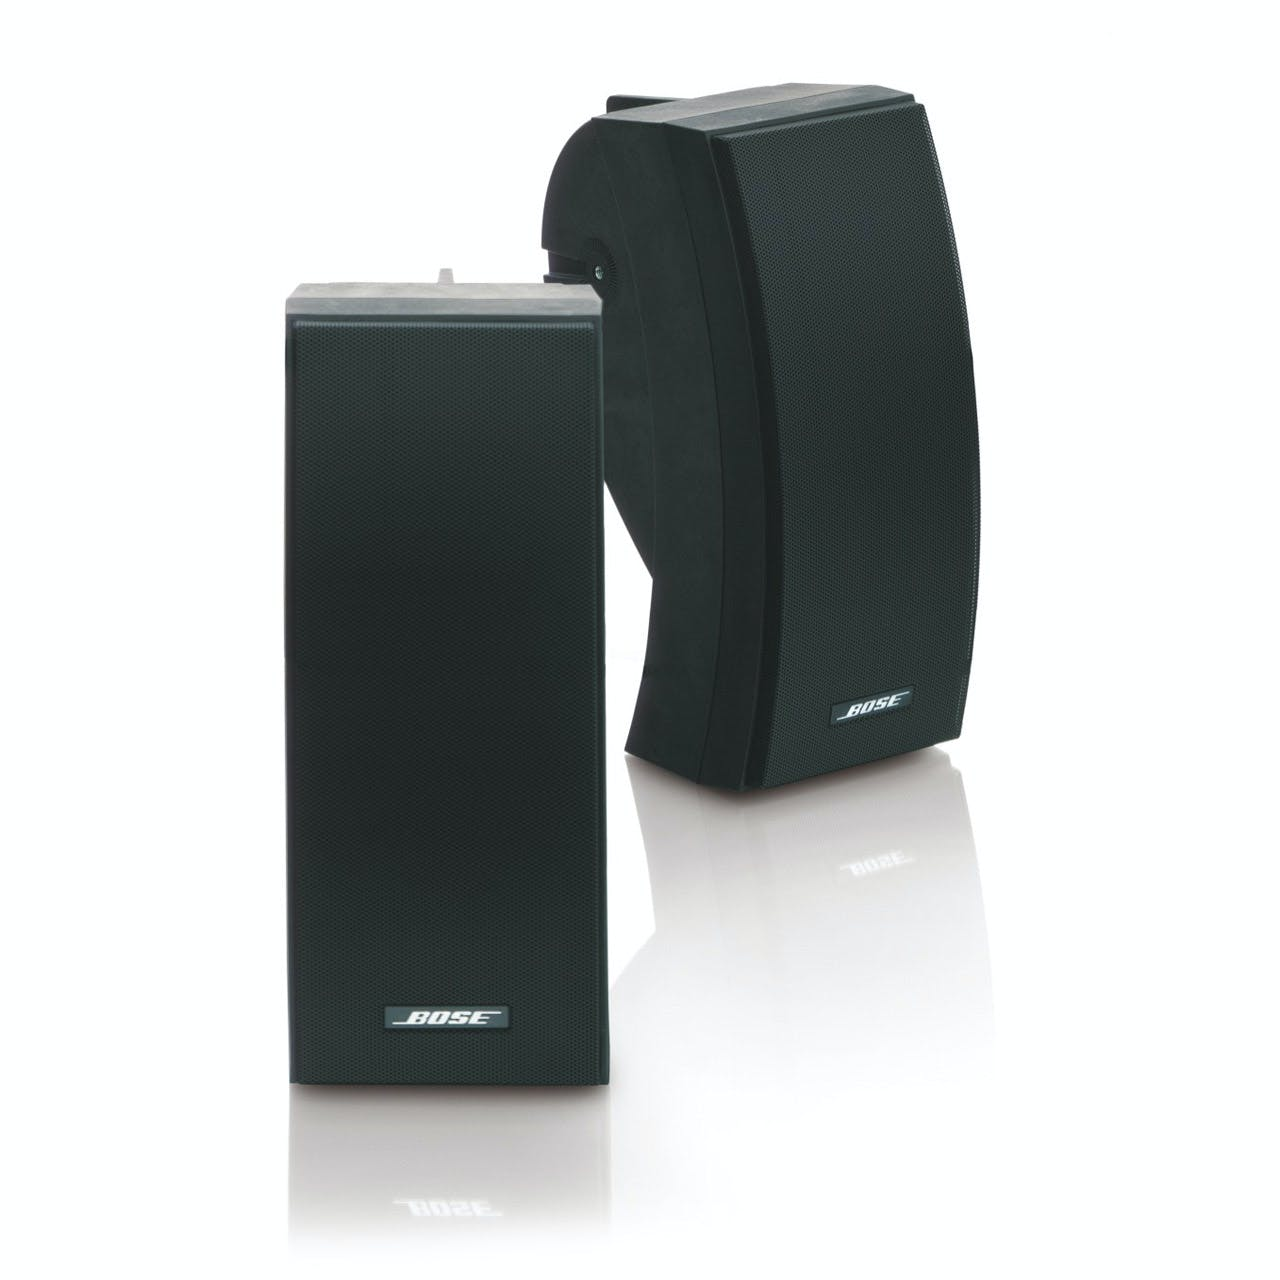 Bose 251-BLK